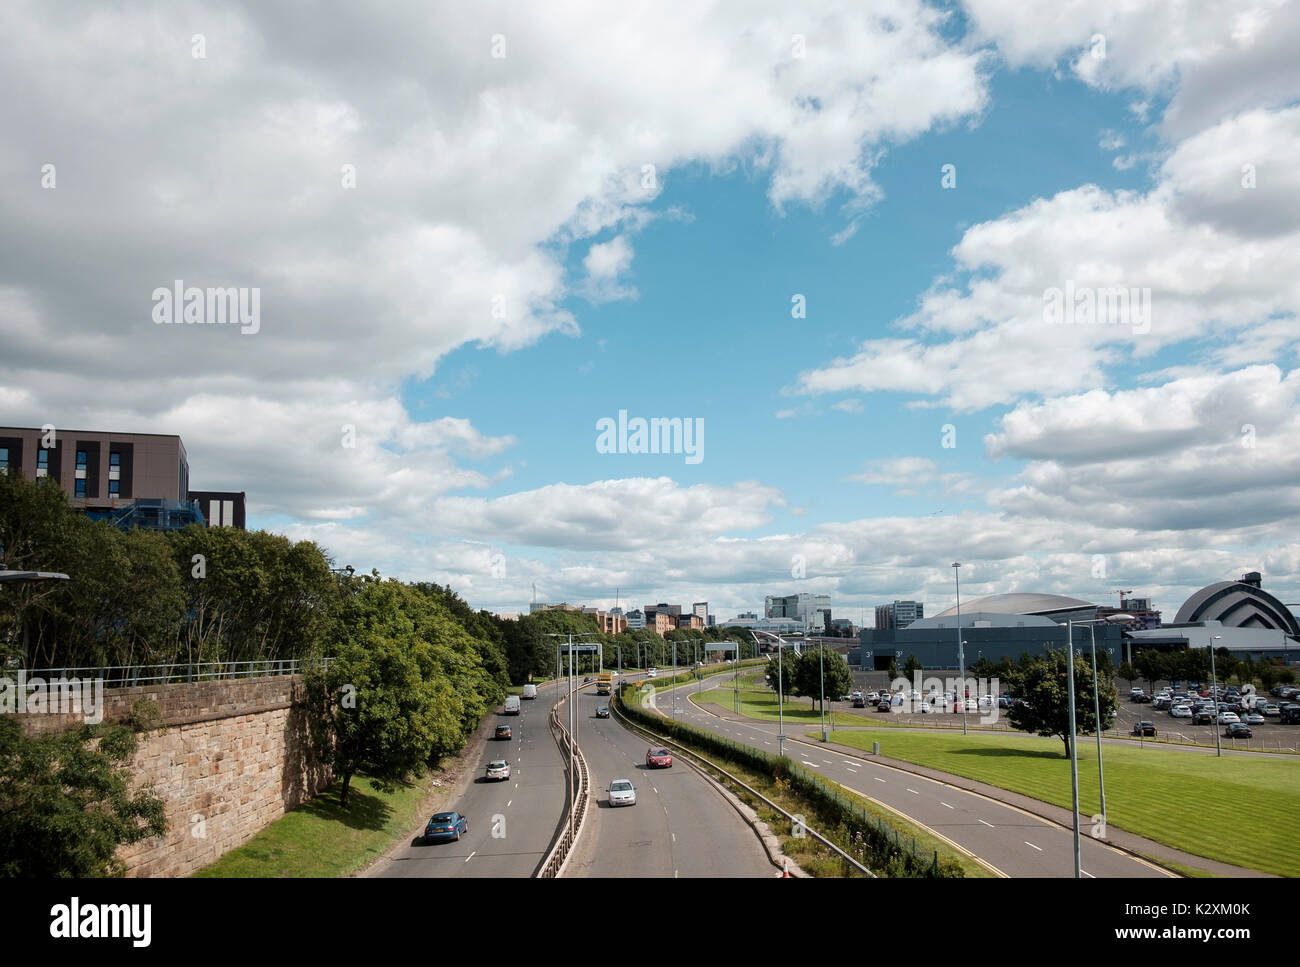 The A814 Pointhouse Road runs besides the buildings of the Clyde Waterfront Regeneration area, Glasgow - Stock Image